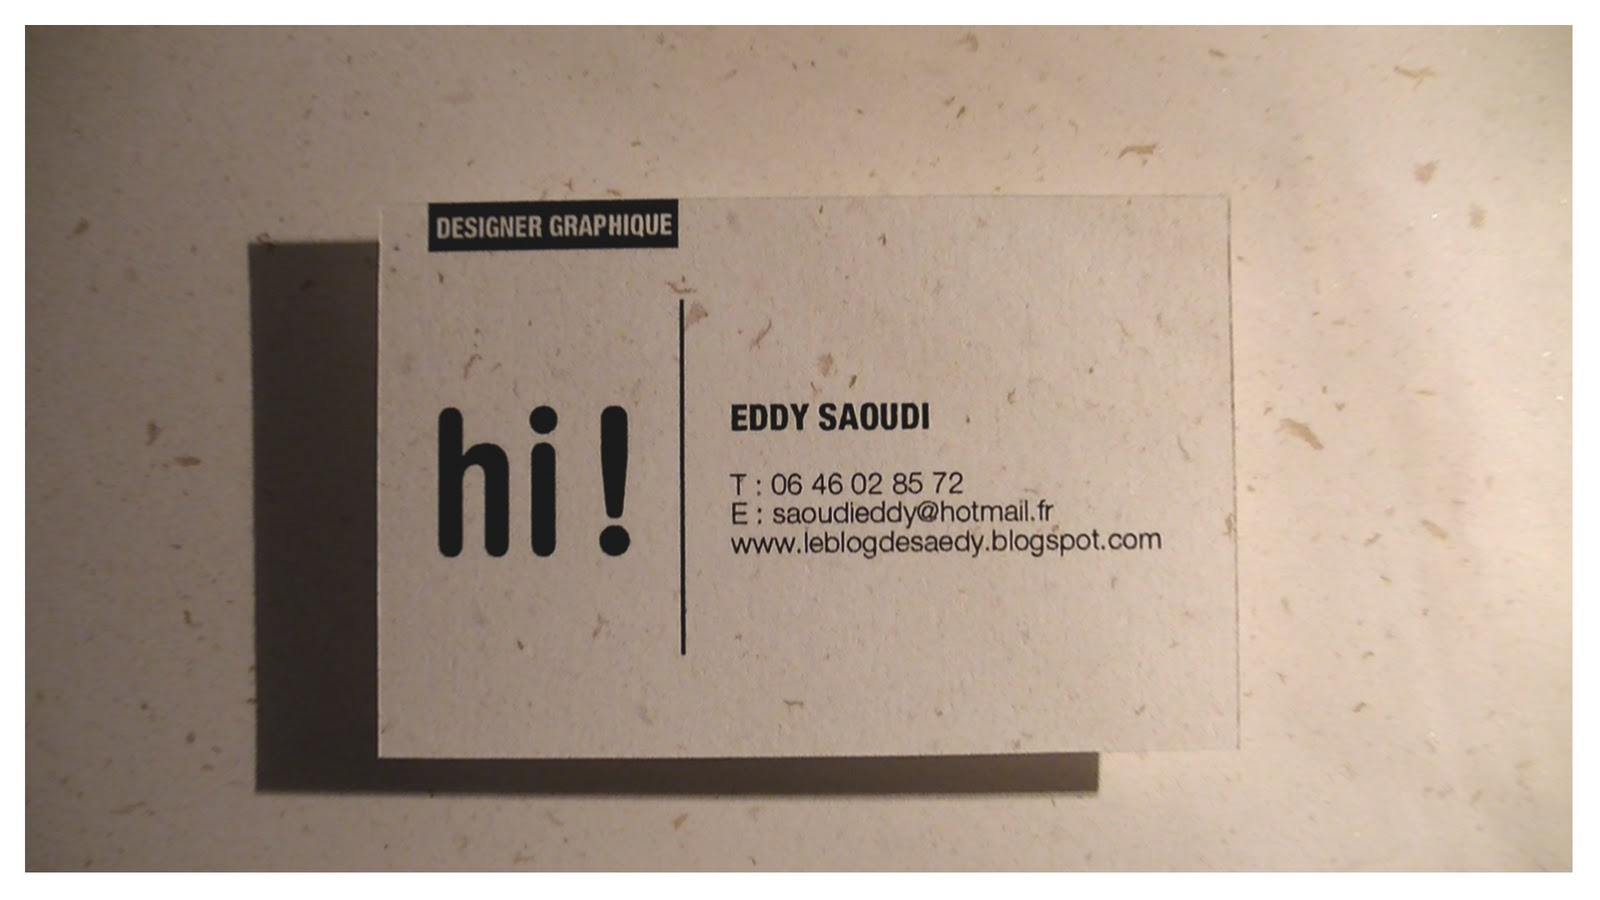 Turbo Le blog de Saedy: carte de visite graphiste originale photoshop  UY16